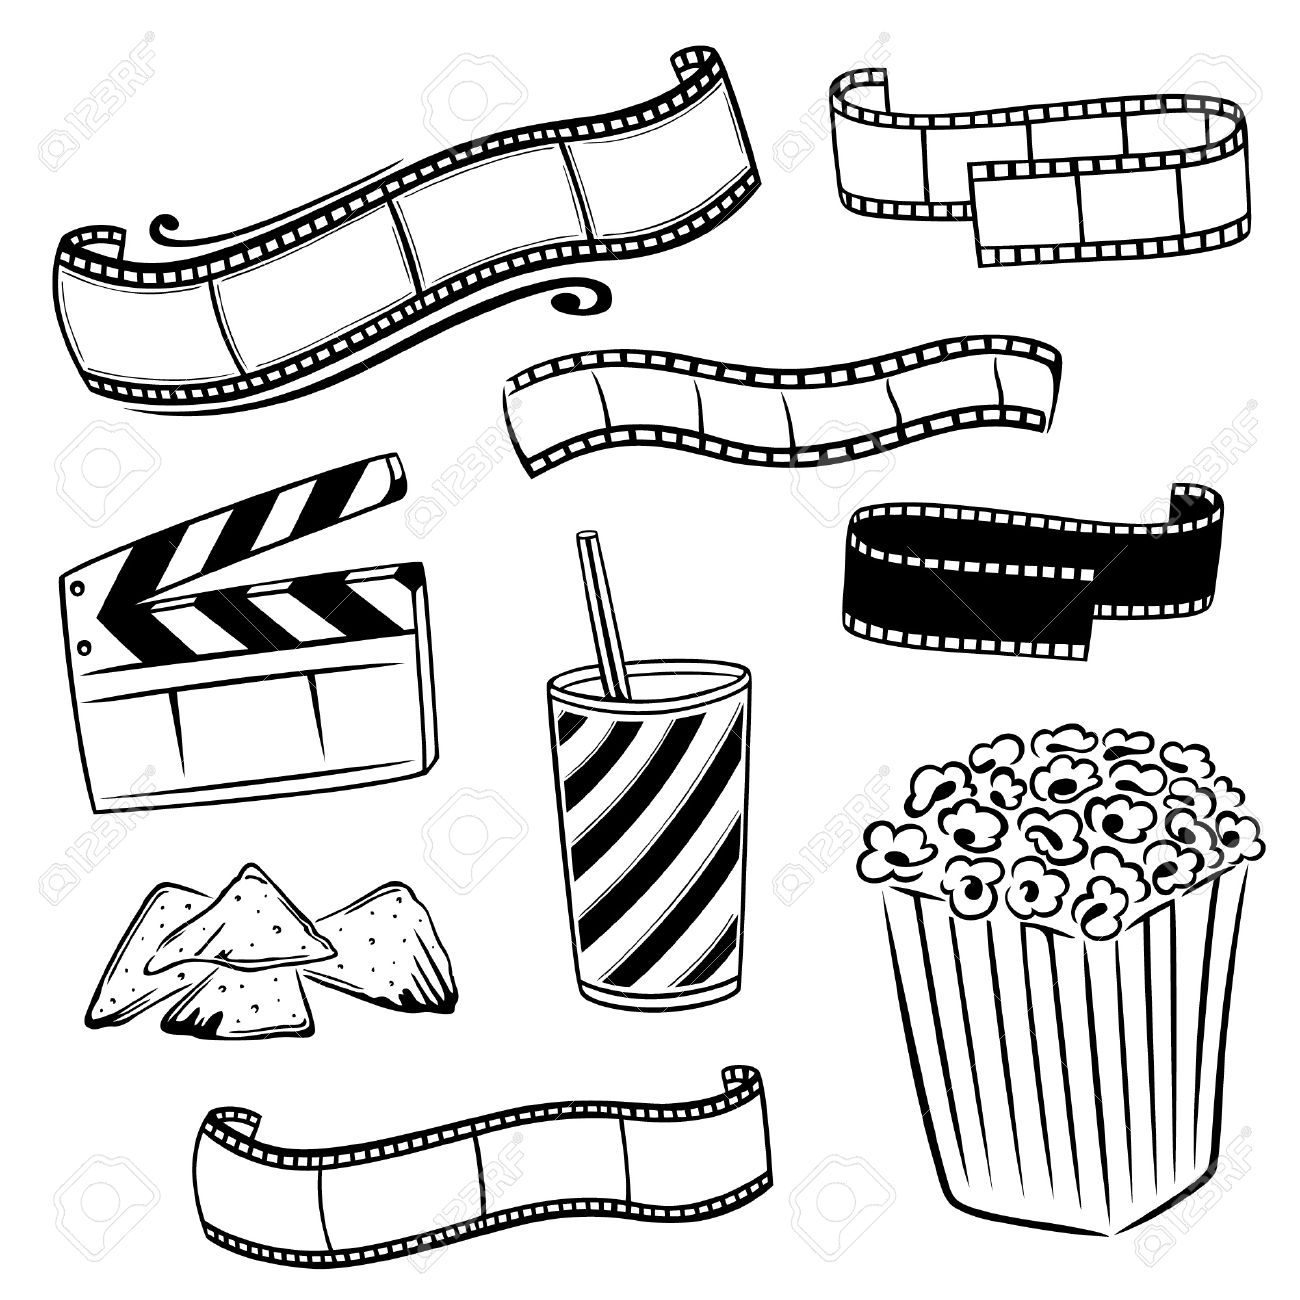 Movie Film Drawing At Getdrawings Com Free For Personal